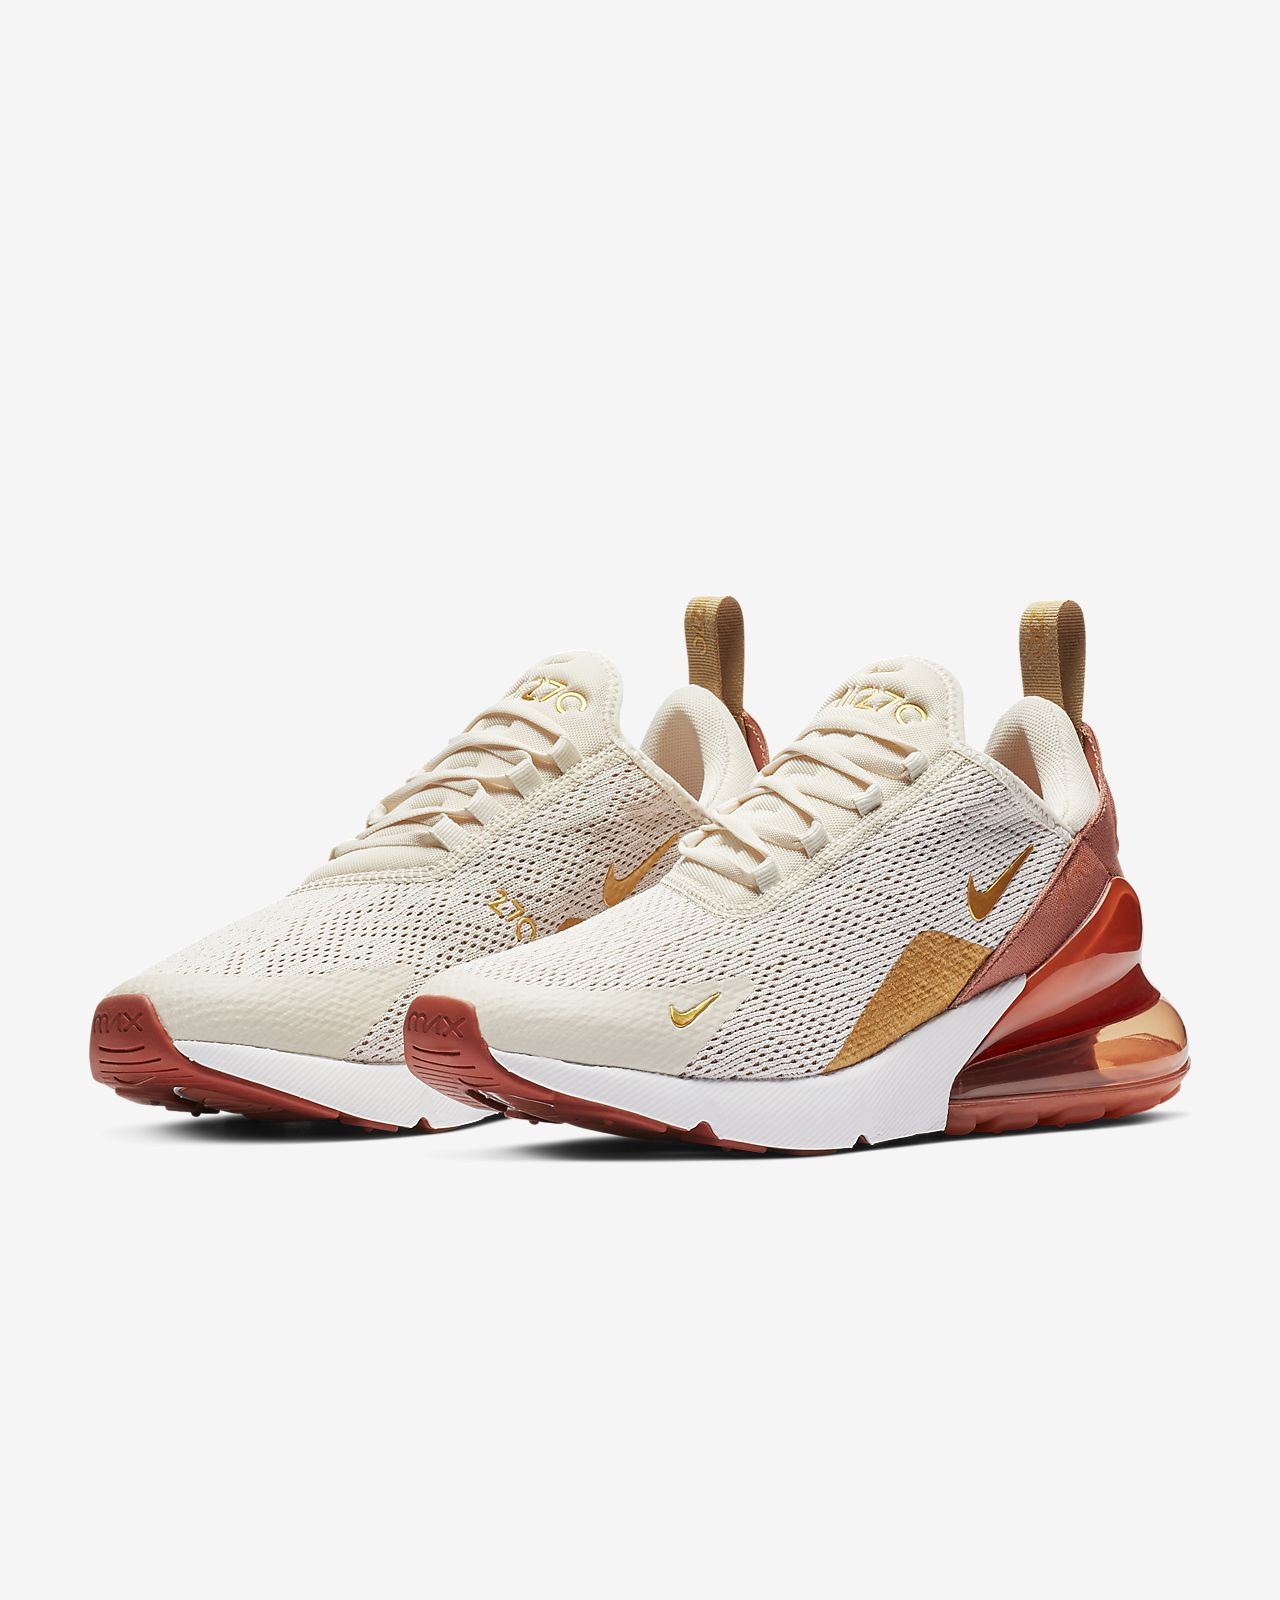 7186f2afc90b Low Resolution Nike Air Max 270 Women s Shoe Nike Air Max 270 Women s Shoe